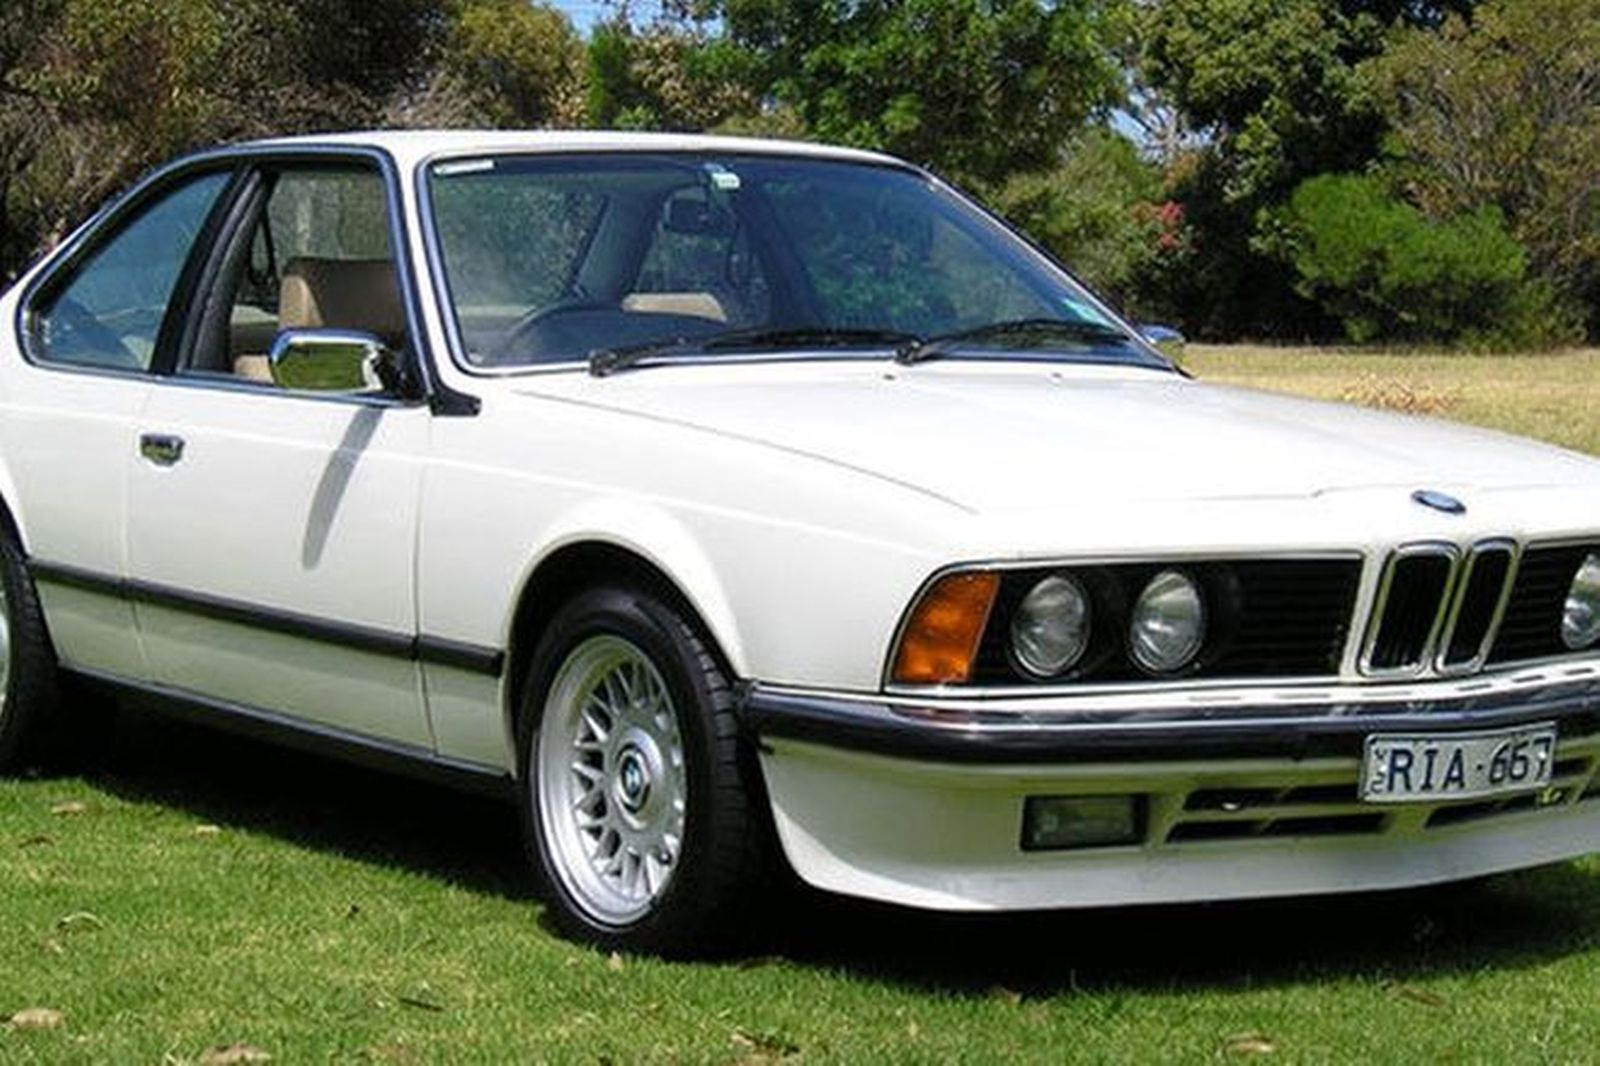 1983 bmw 635csi coupe sold bmw 635 csi coupe auctions lot 26 shannons E24 633CSi at crackthecode.co